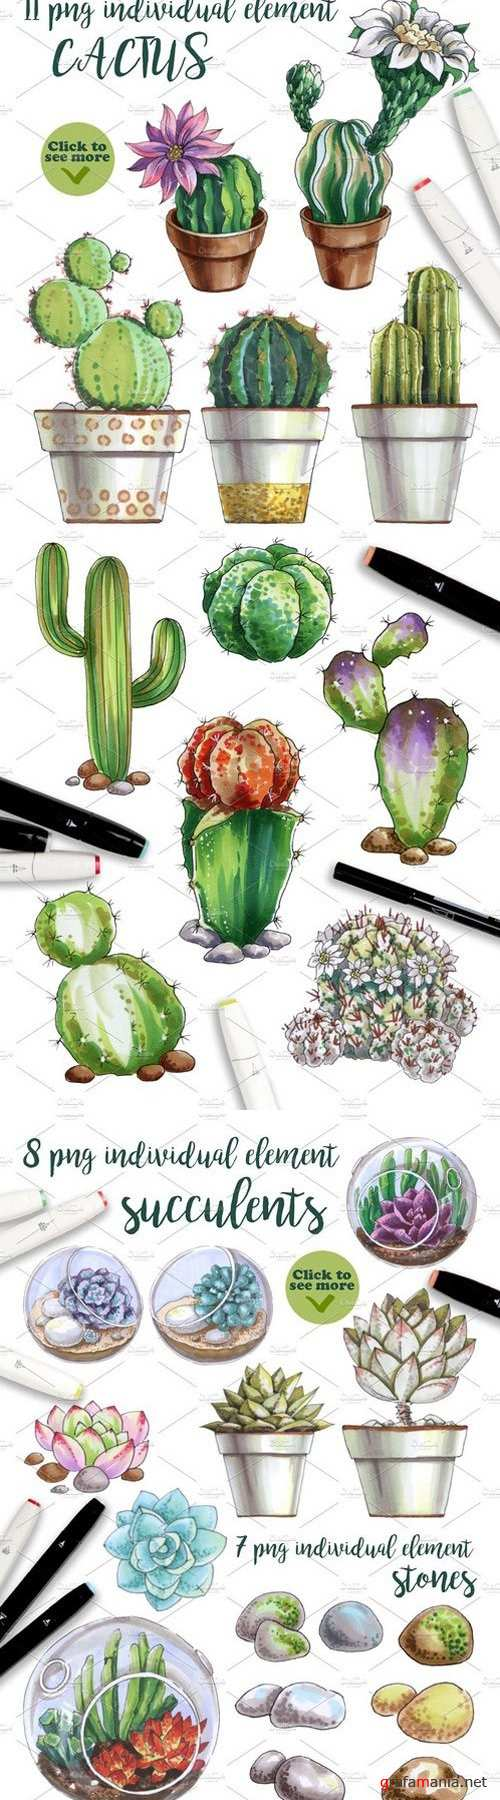 World of cactus and succulents 2231329